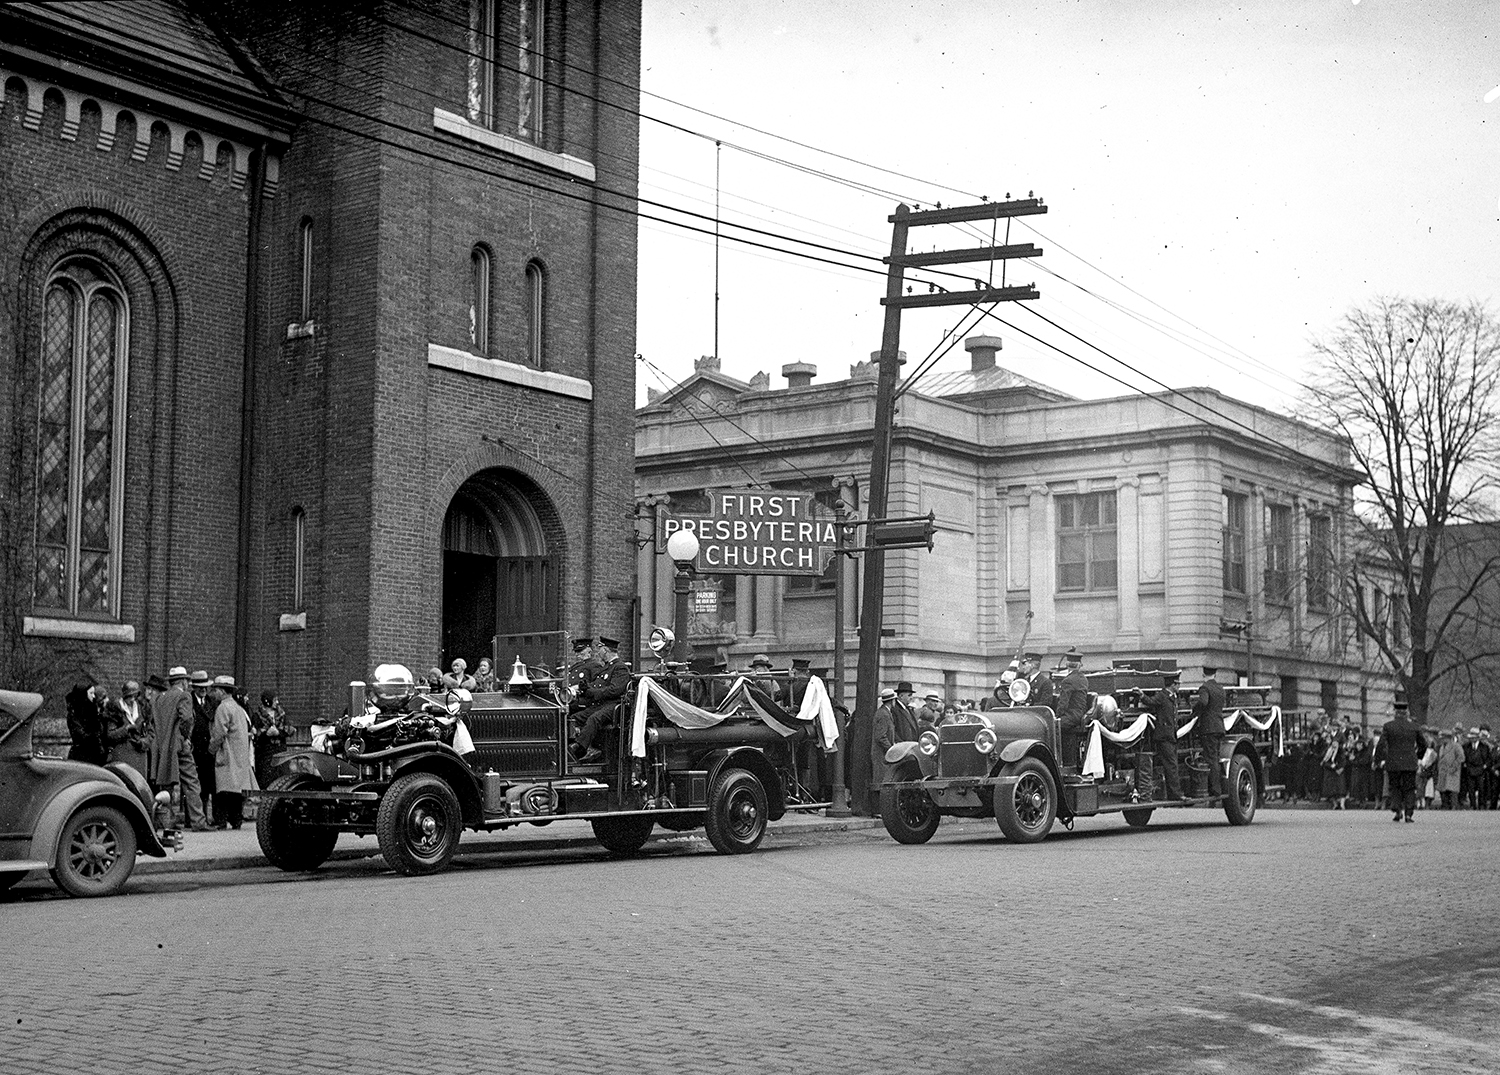 Funeral services for Springfield Fire Department Asst. Fire Chief Harry Durham were held March 24, 1932 at First Presbyterian Church in Springfield, four days after he was killed by an explosion and fire at Springfield High School. File/The State Journal-Register